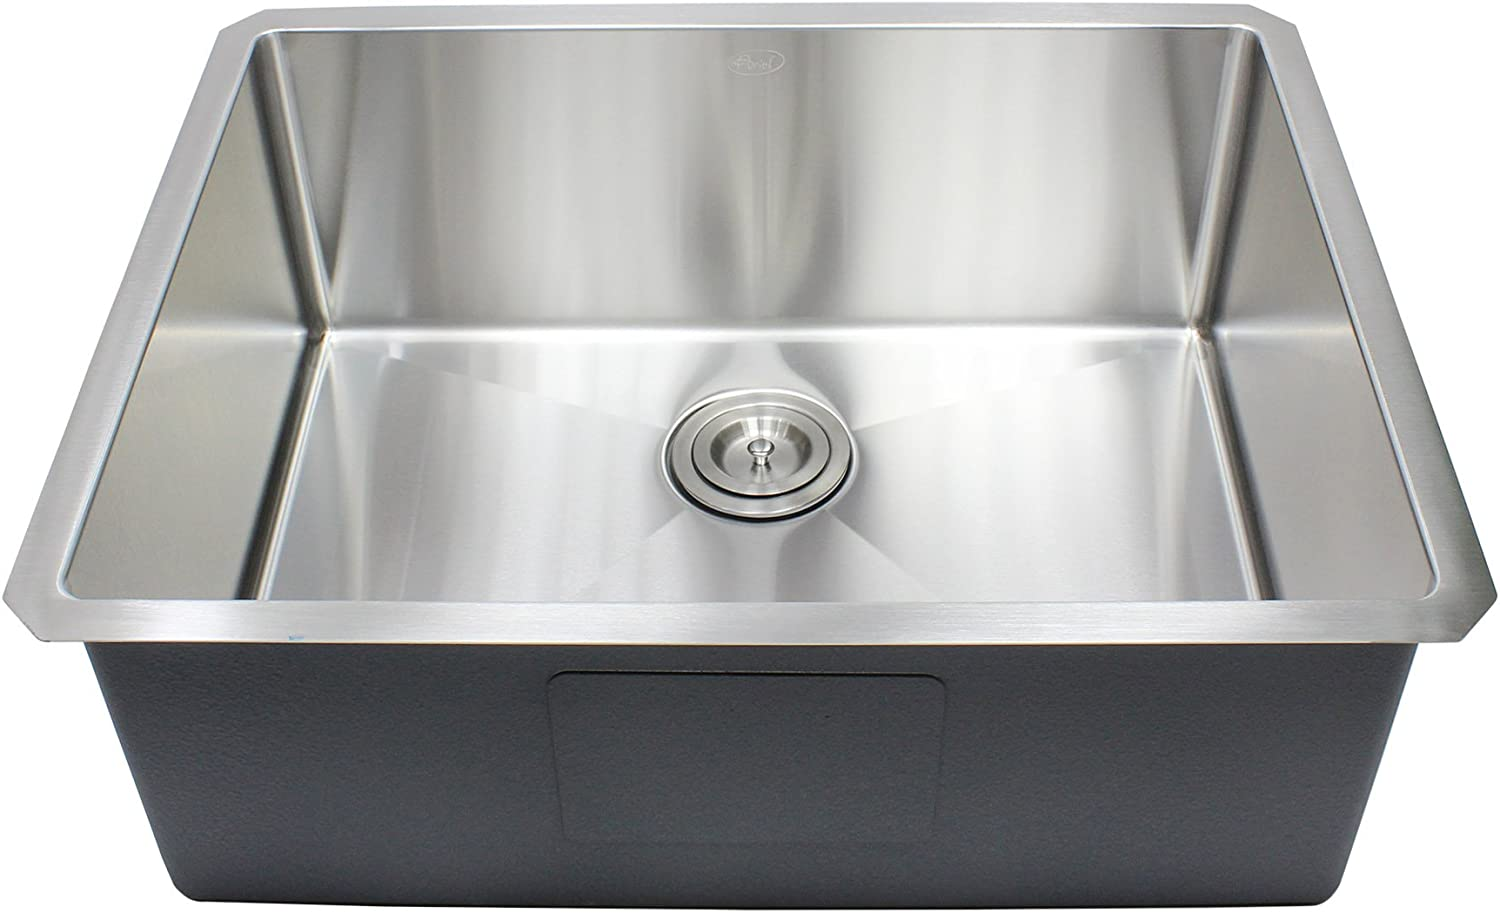 Ariel 26 x 20 Single Bowl Undermount Kitchen Sink